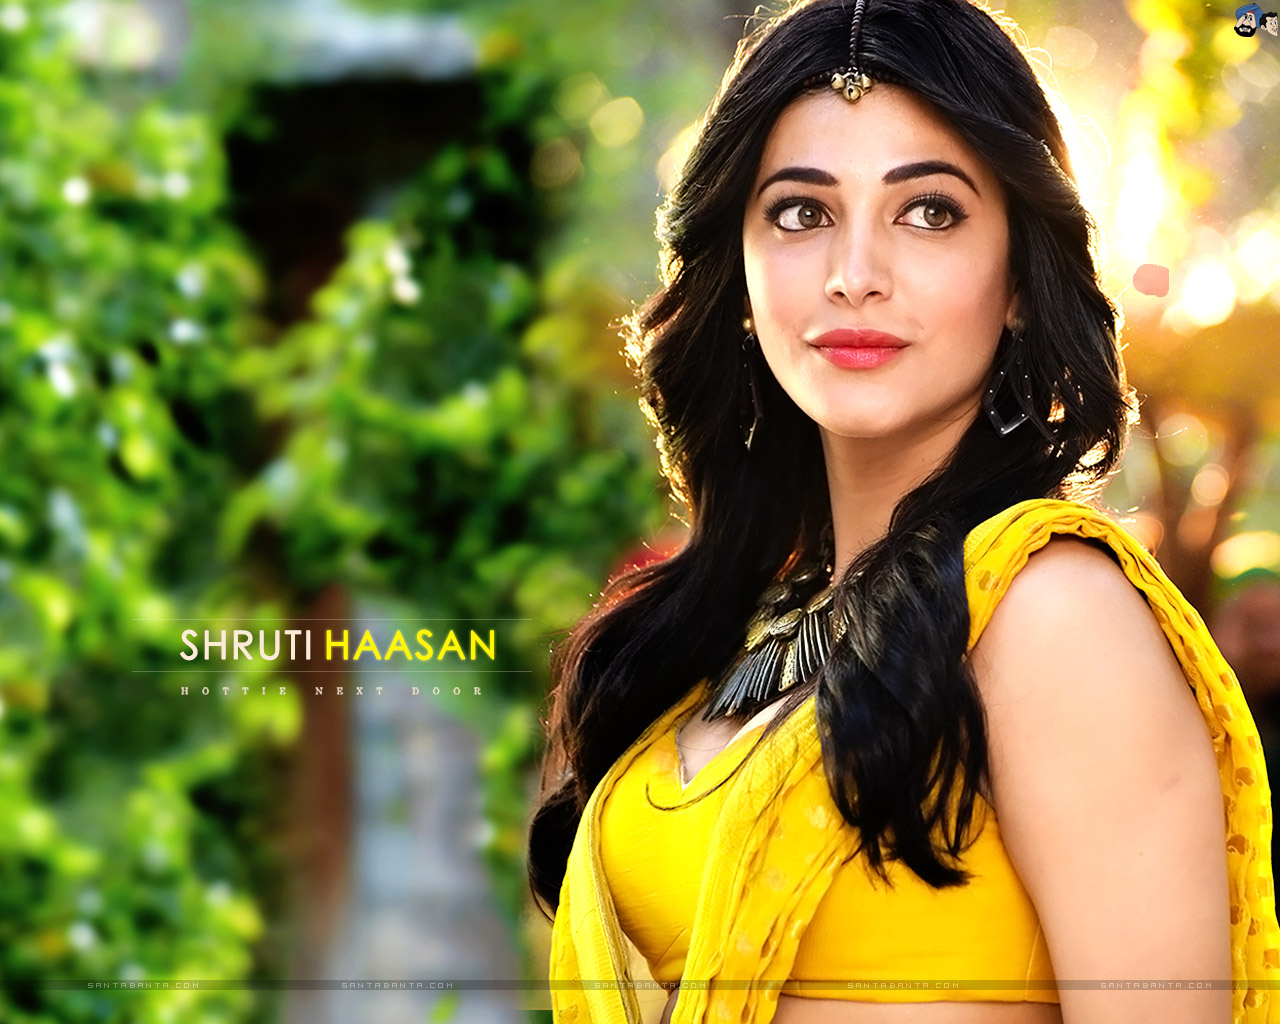 Shruti Haasan: Most Beautiful Places In The